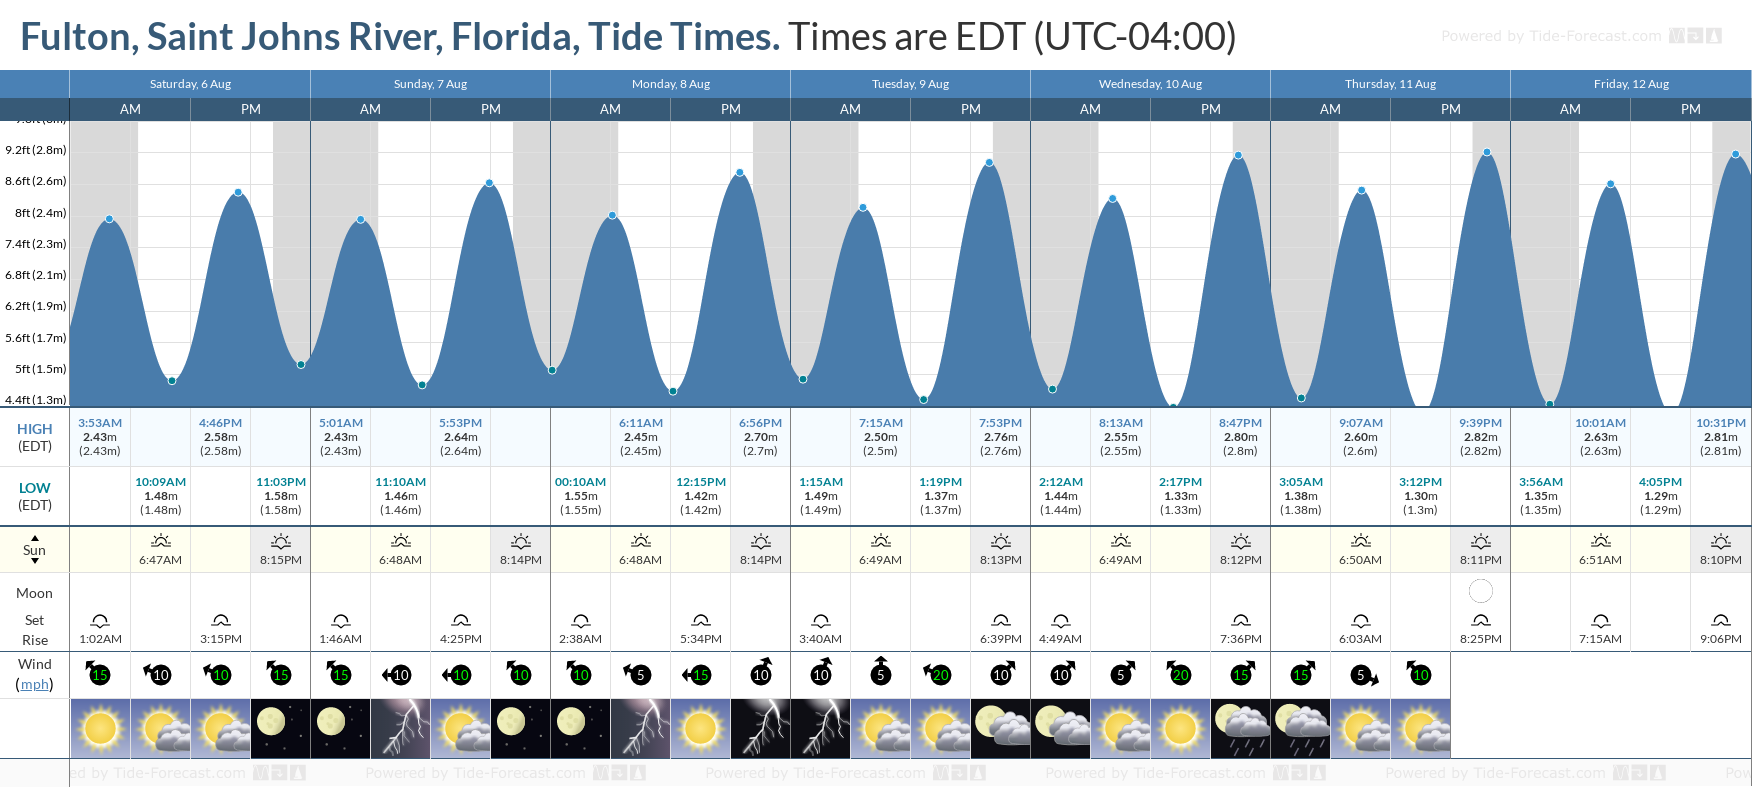 Fulton, Saint Johns River, Florida Tide Chart including high and low tide tide times for the next 7 days